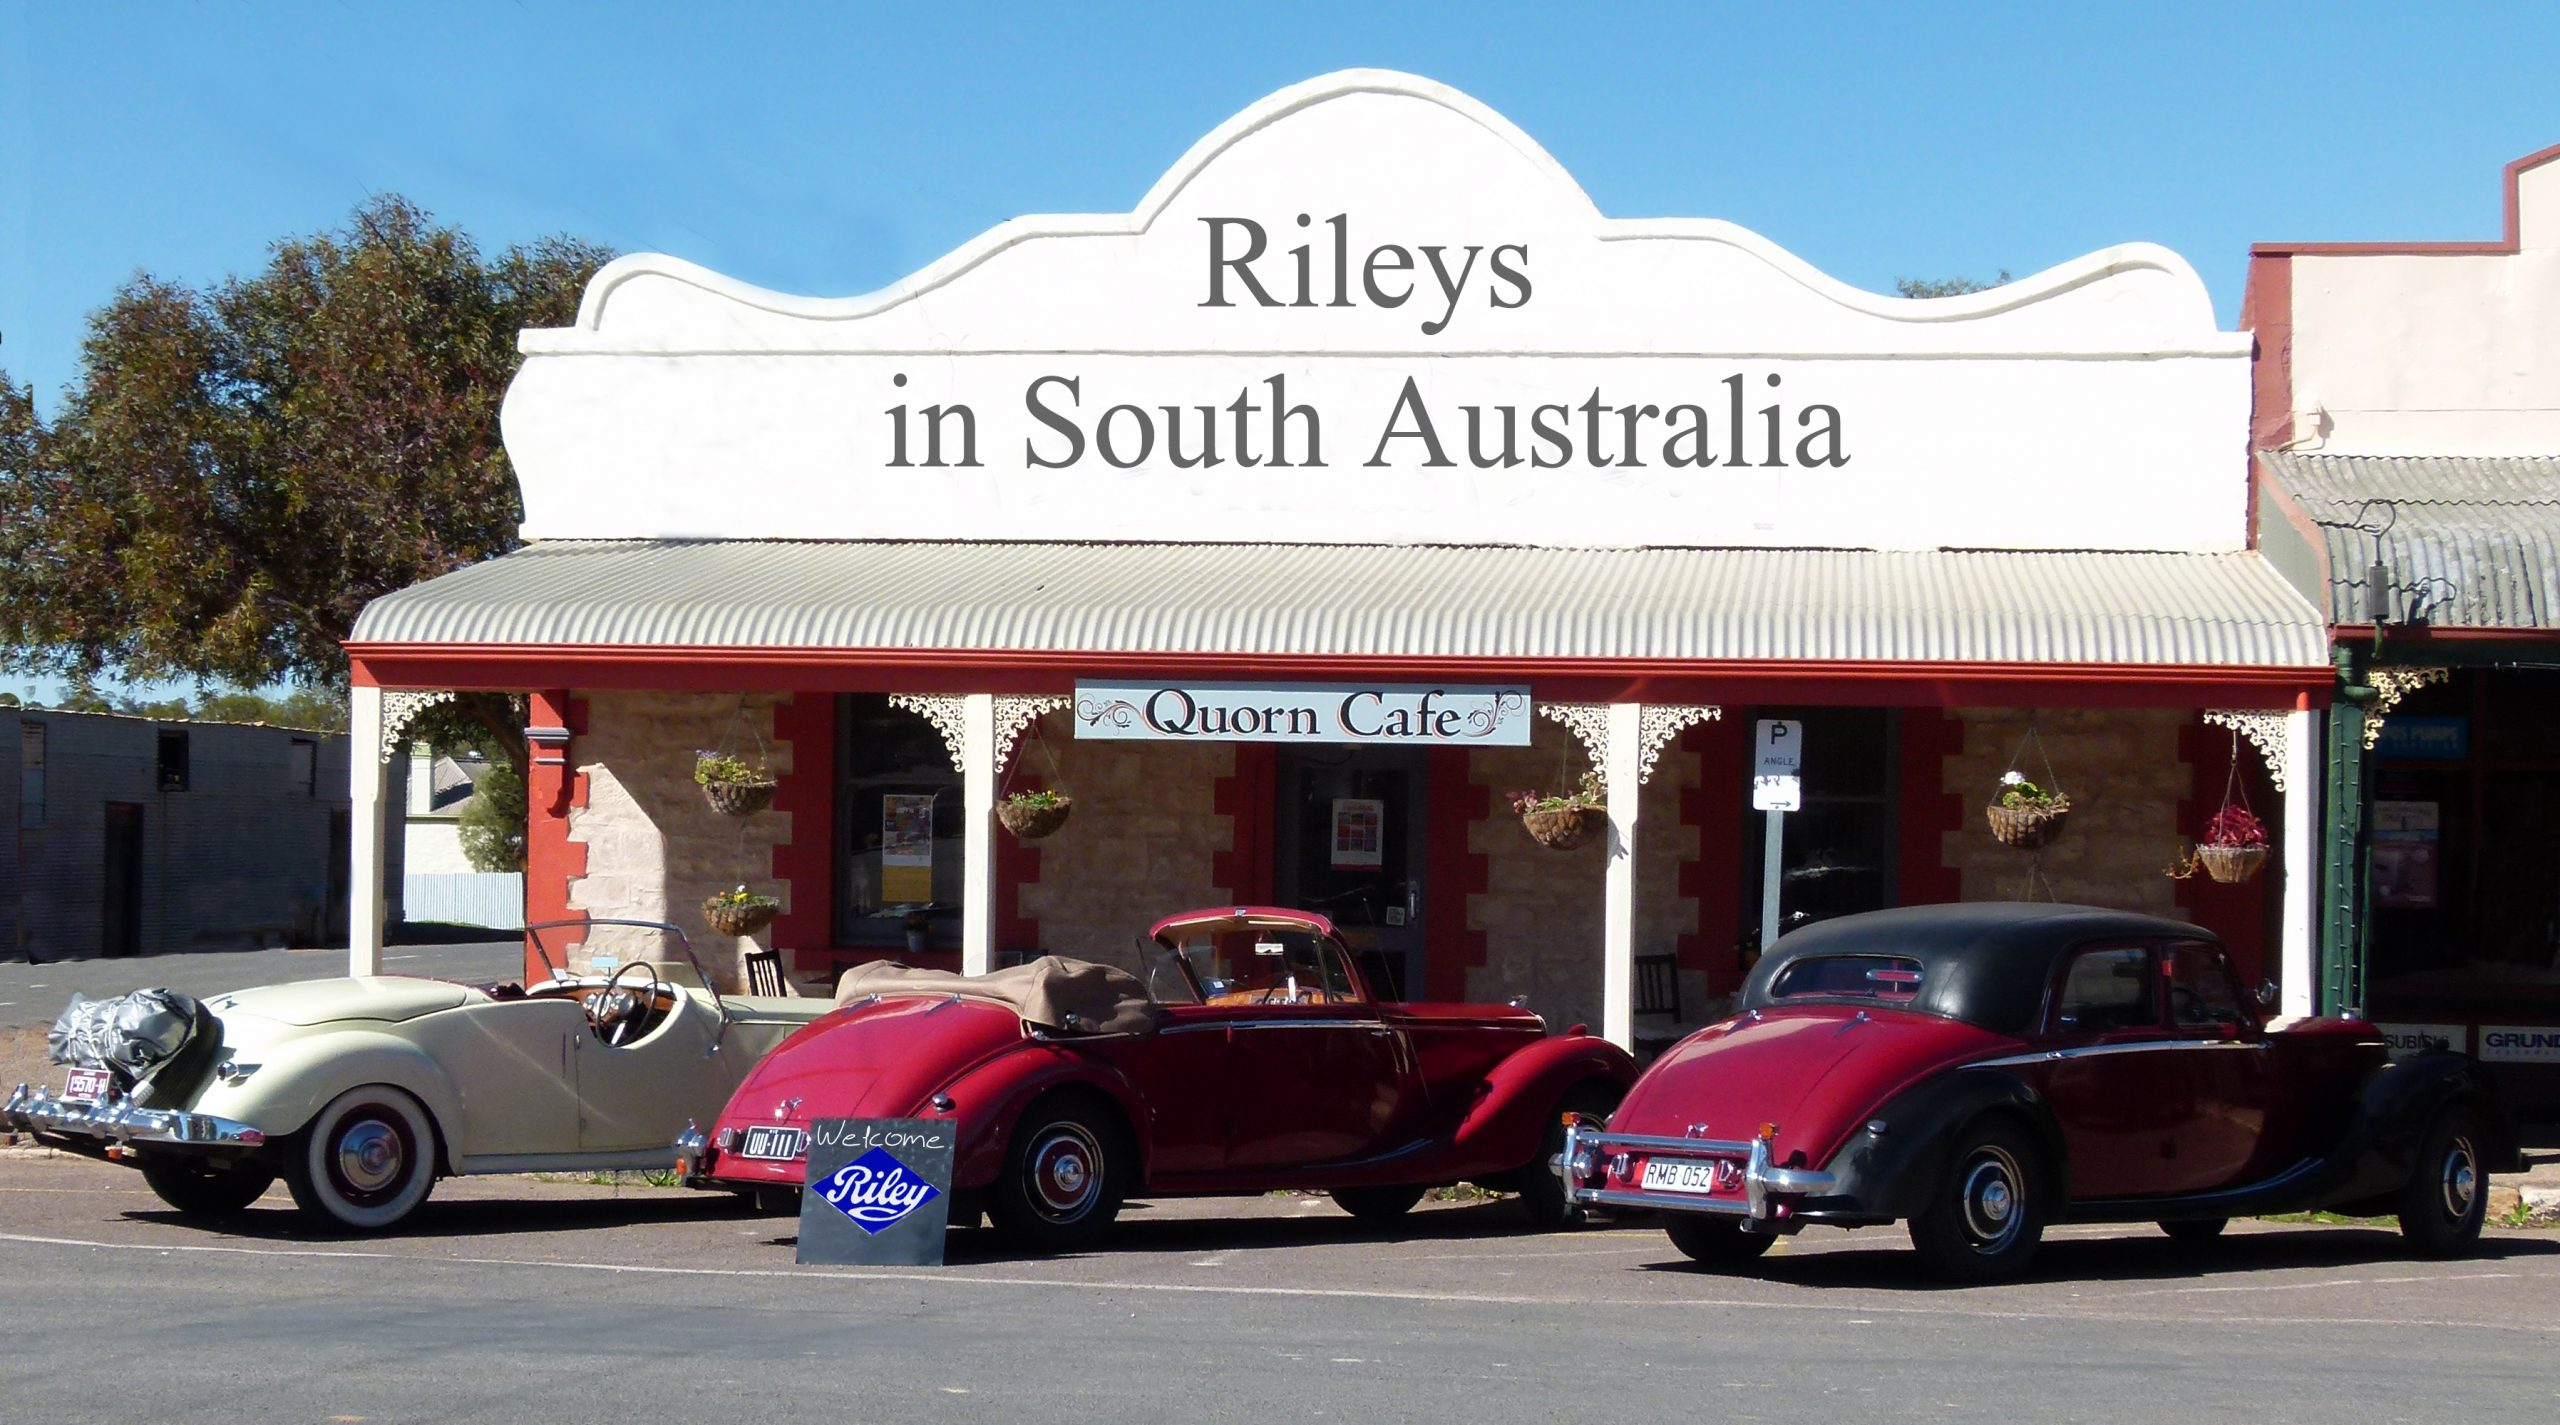 Rileys at The Quorn Cafe